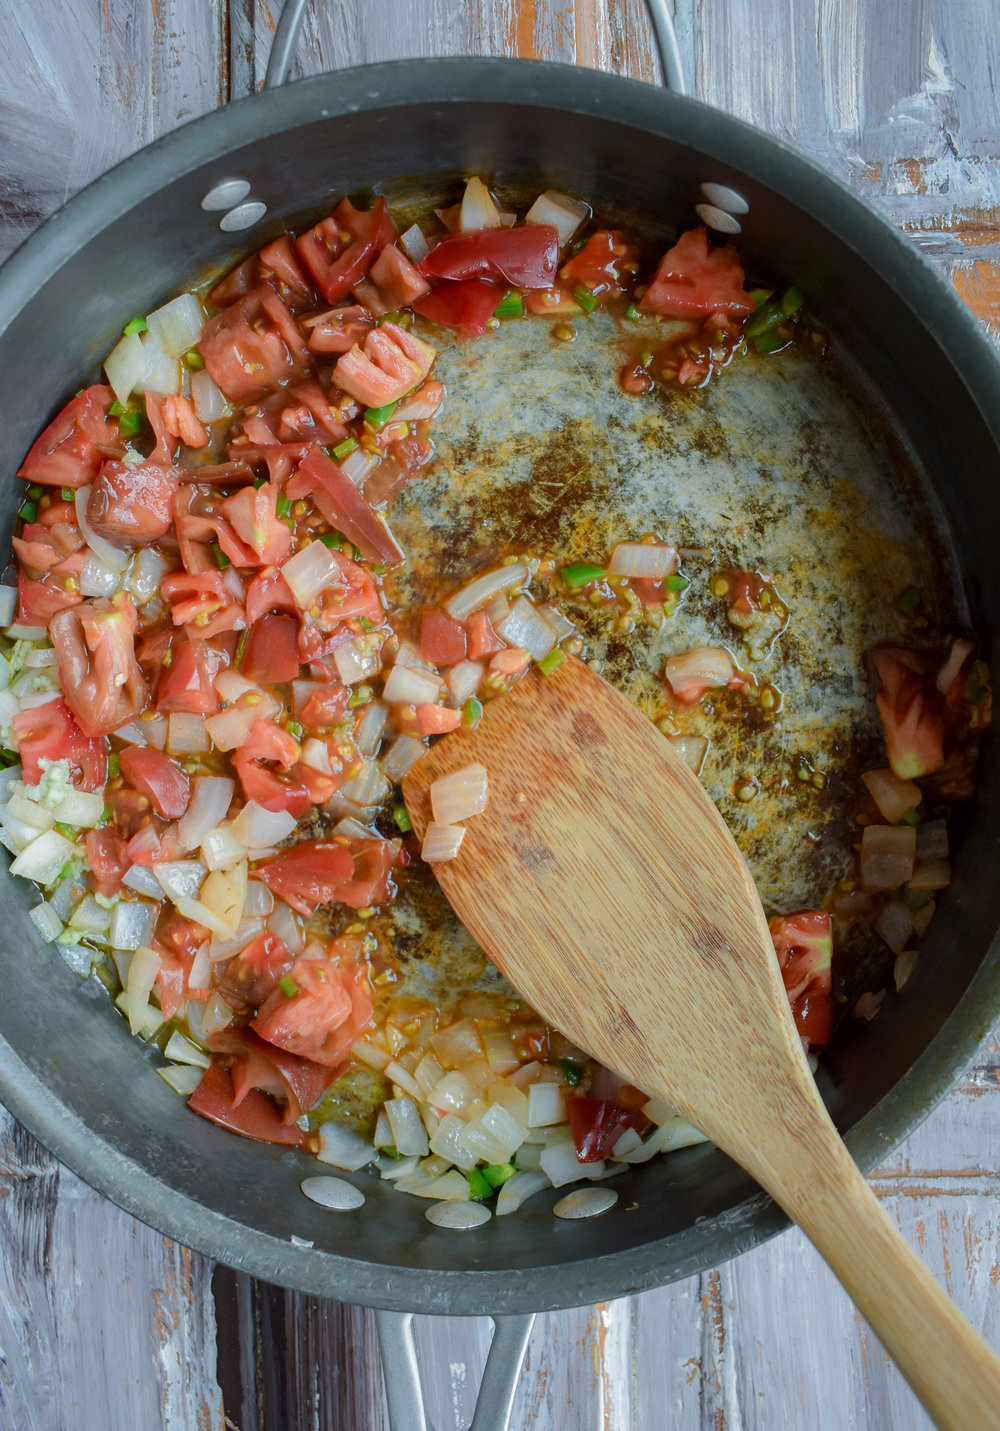 1. Start with the ranchero sauce. Add oil, onion, garlic, and jalapeno to a medium to large frying pan. Cook over medium heat for 5 minutes. Next add the heirloom tomato, cook for another sixty seconds.